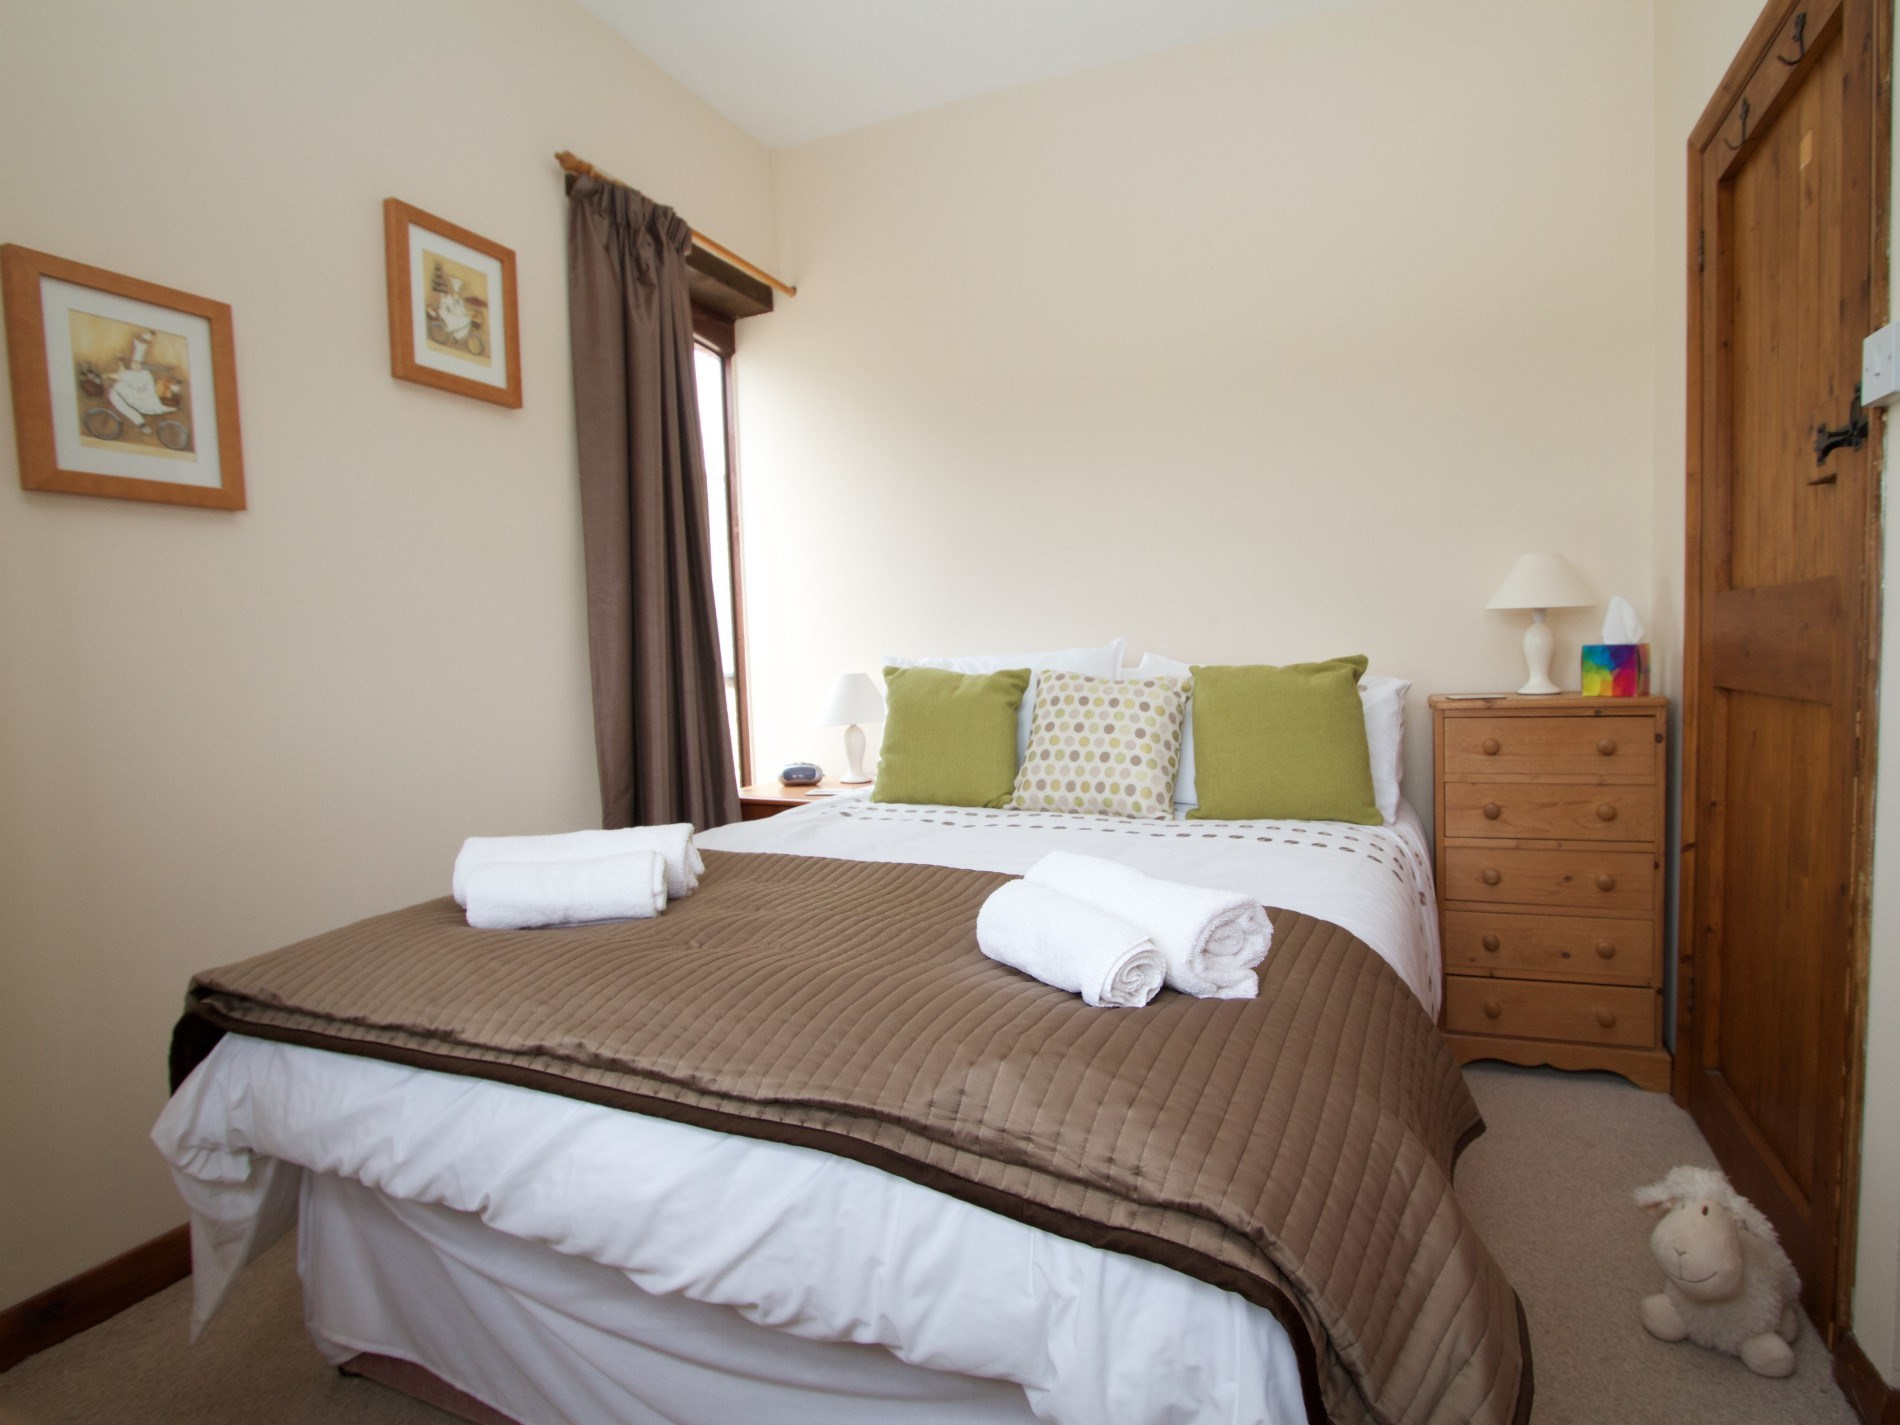 A further double bedroom situated on the first floor